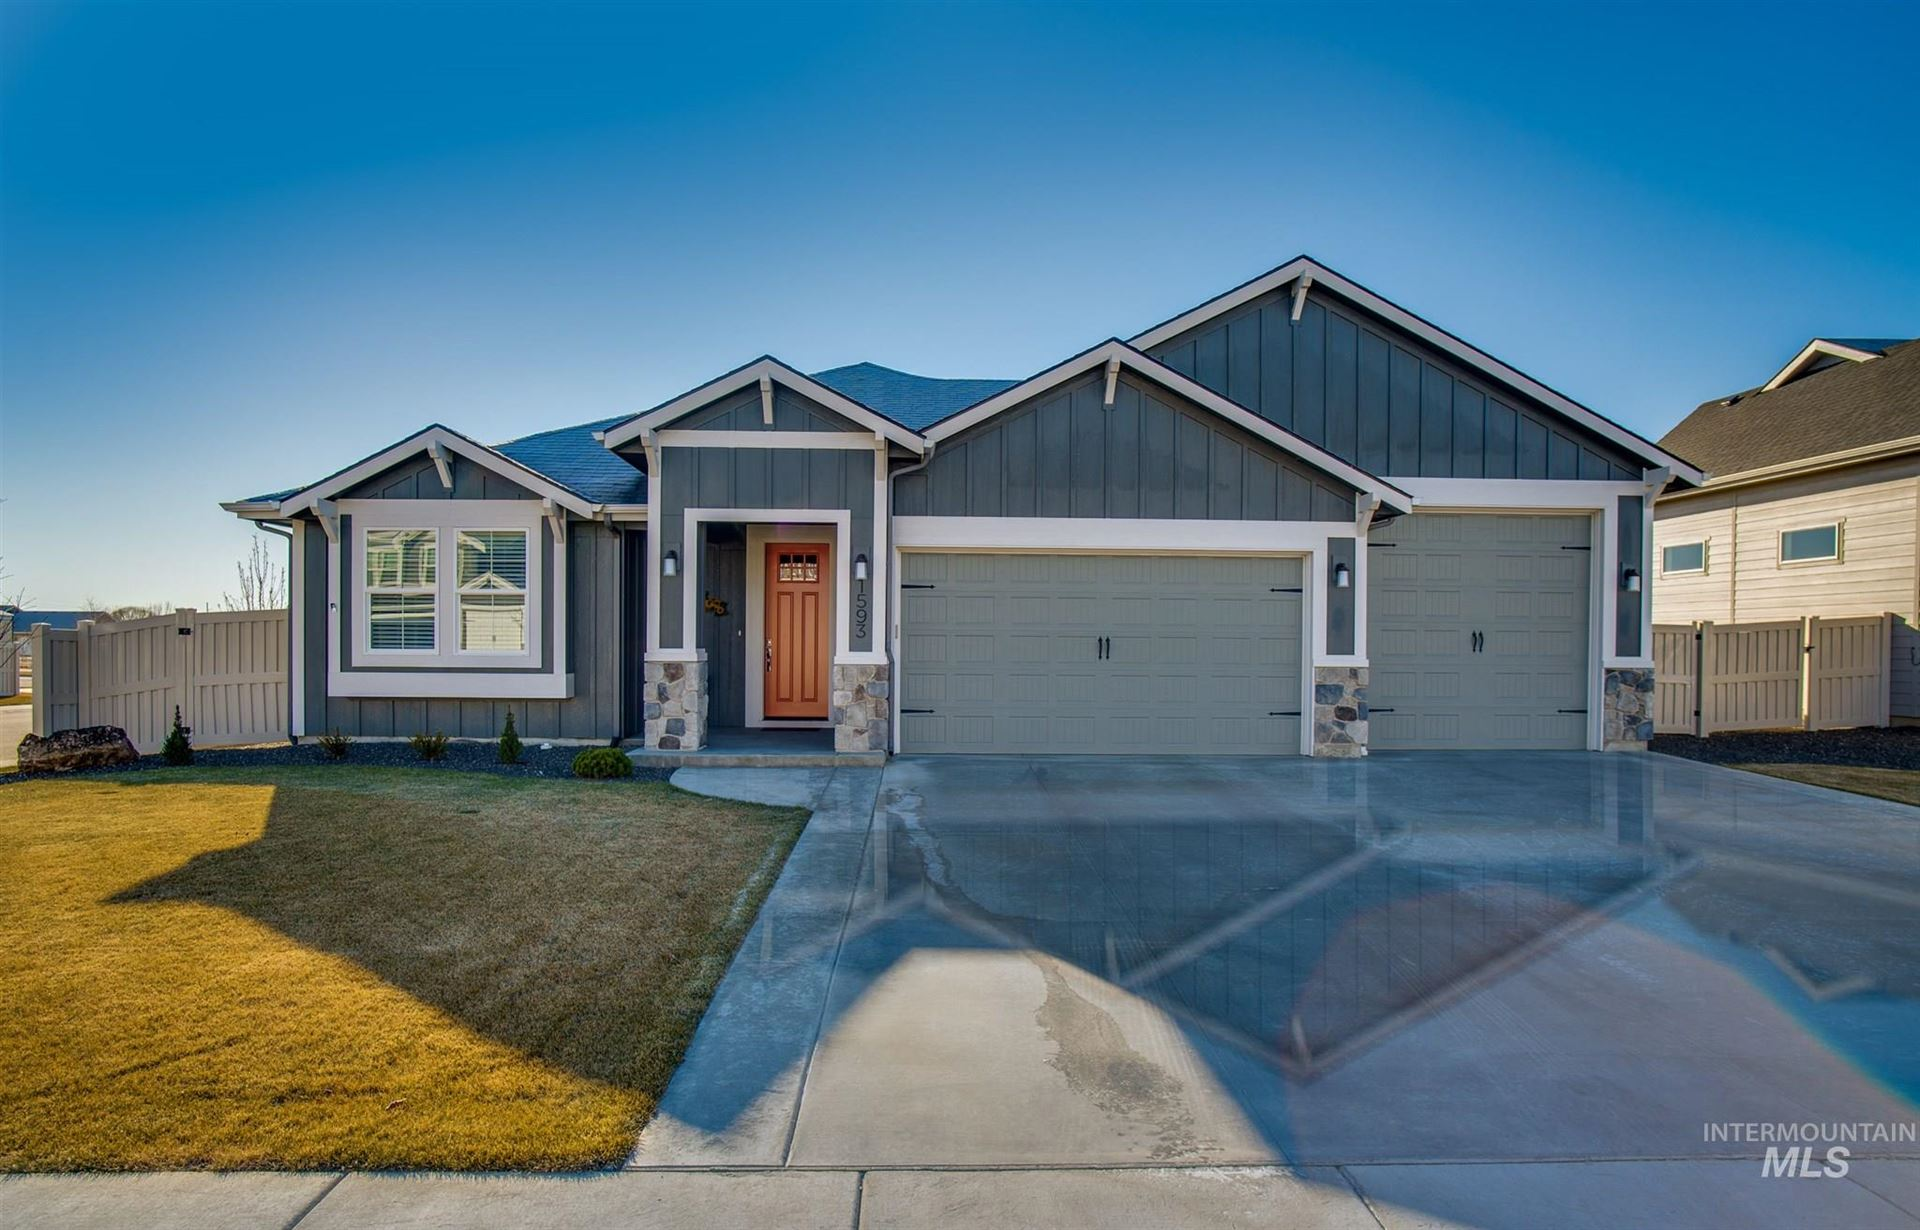 Photo of 1593 Fort Williams St, Middleton, ID 83644 (MLS # 98799044)